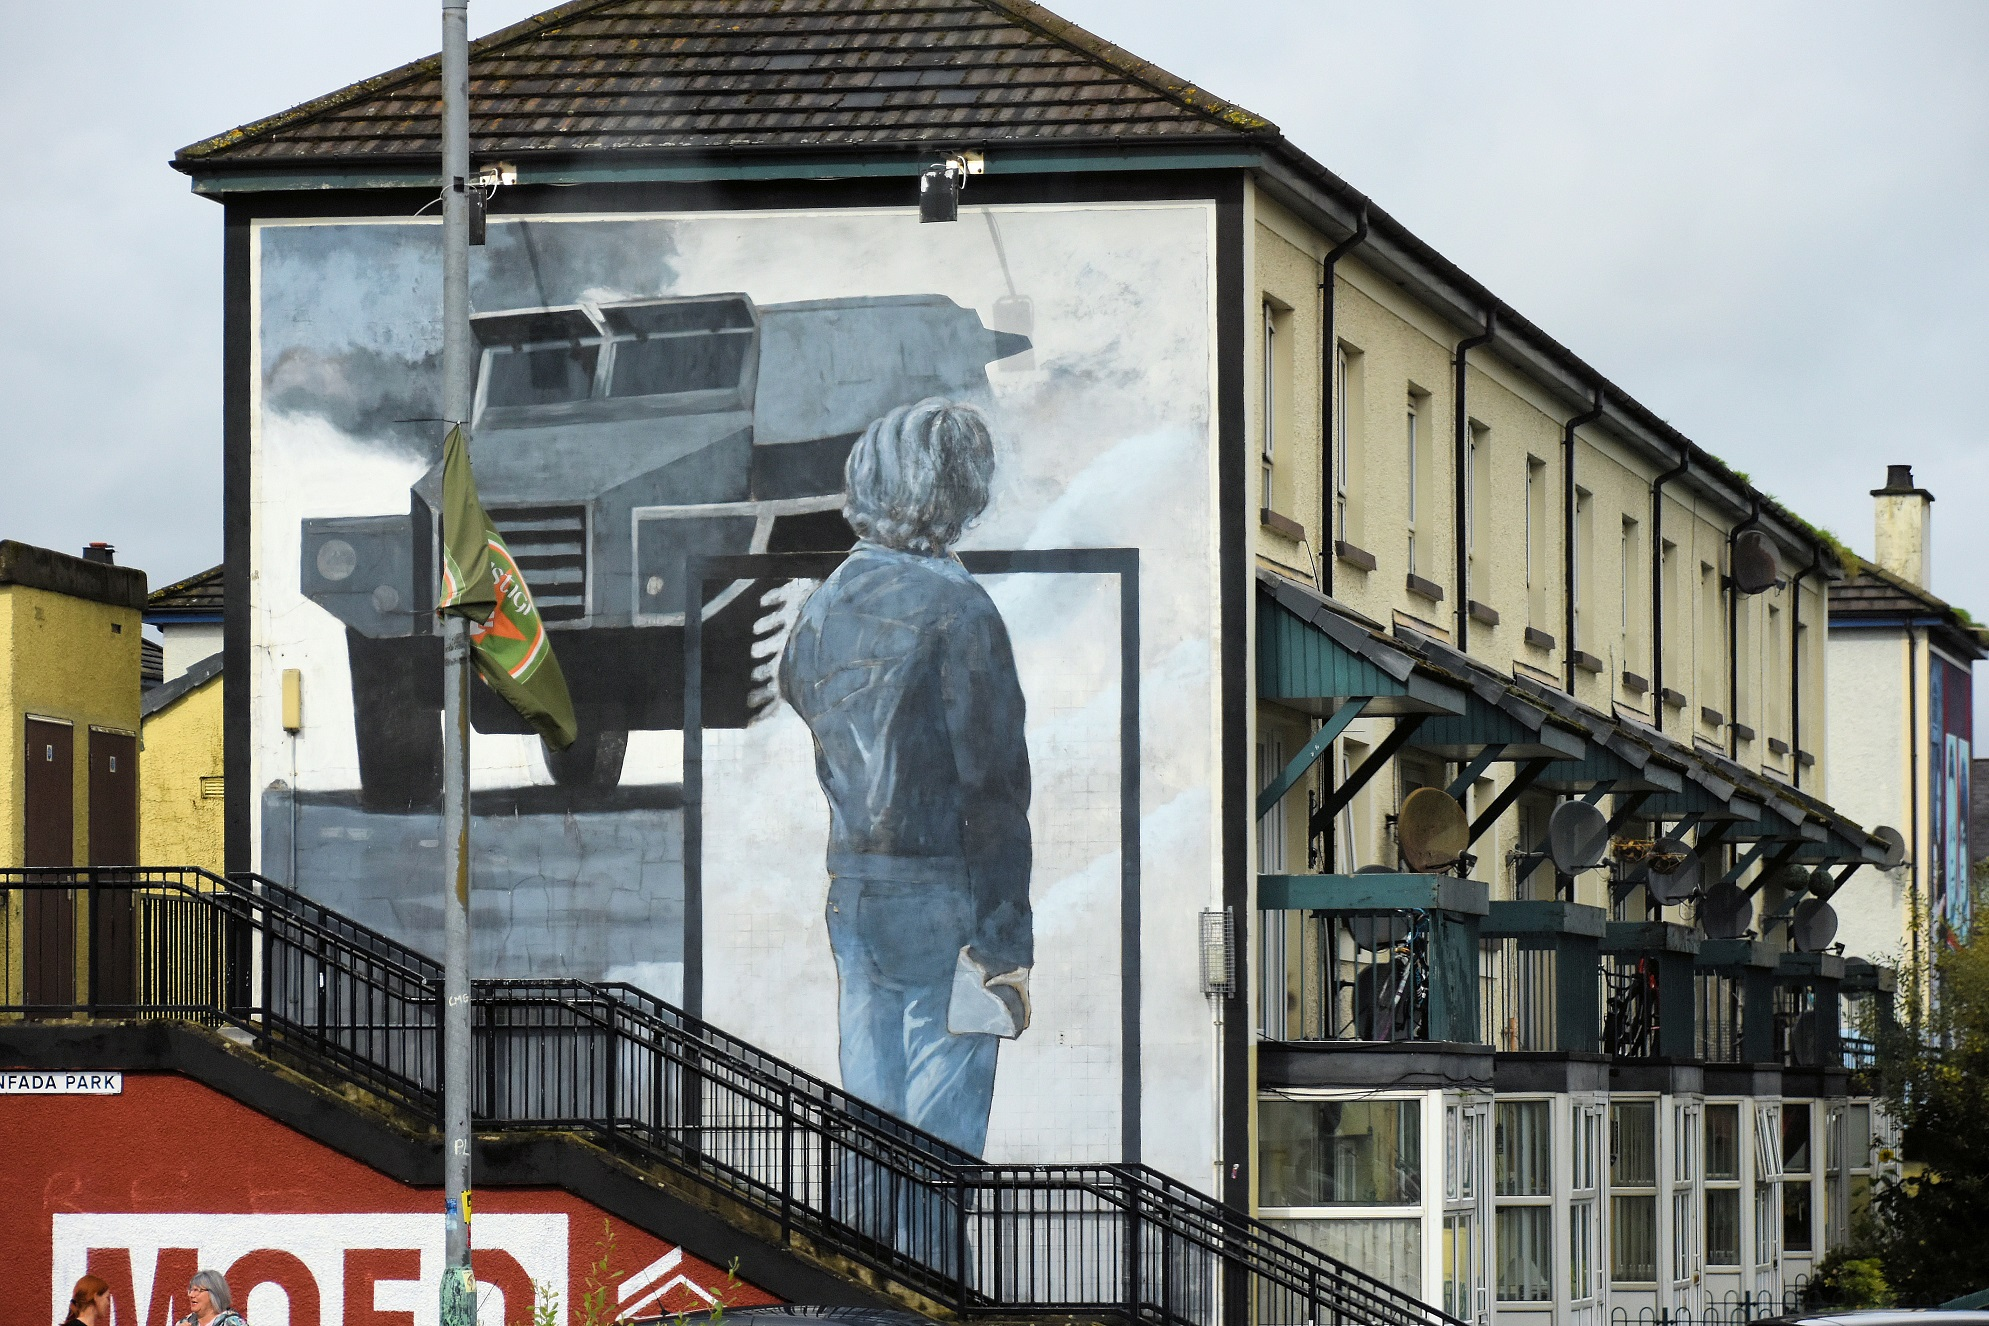 In an effort to commemorate the uprising of Irish Catholics against a ruling minority (Protestants), which led to almost 30 years of unrest in Northern Ireland after 1969, three artists from the catholic neighbourhood of Bogside painted 12 murals illustrating the struggle. They used walls of apartment housing as canvasses. This mural depicts a youth who is ready to throw a rock as an act of defiance against the approaching British military forces.